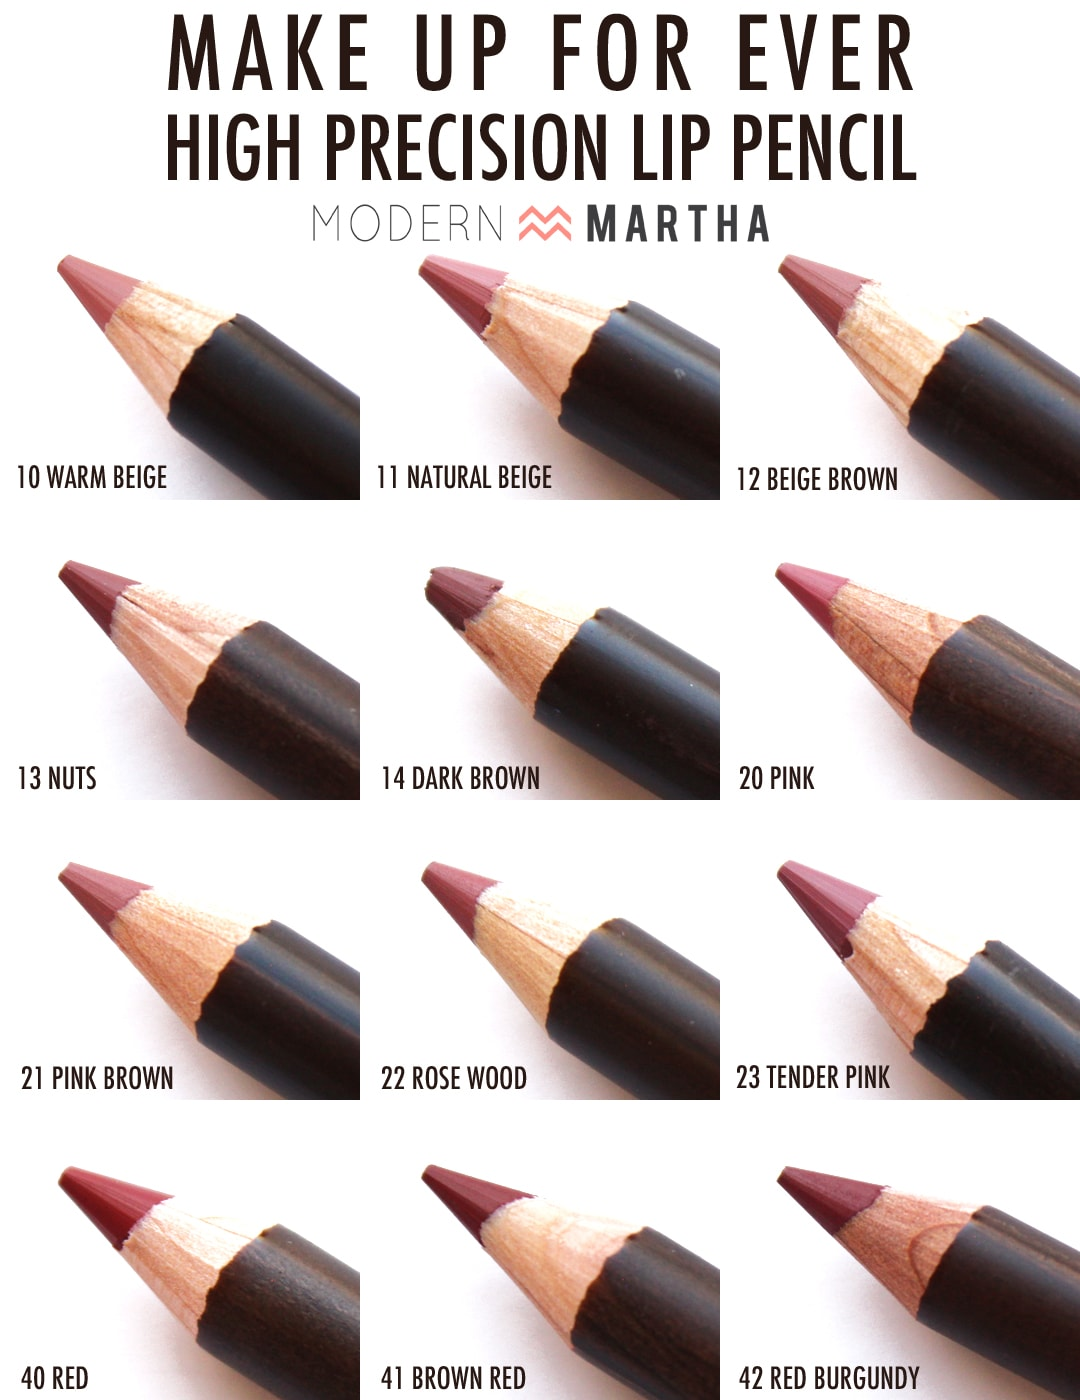 Make Up For Ever High Precision Lip Pencil